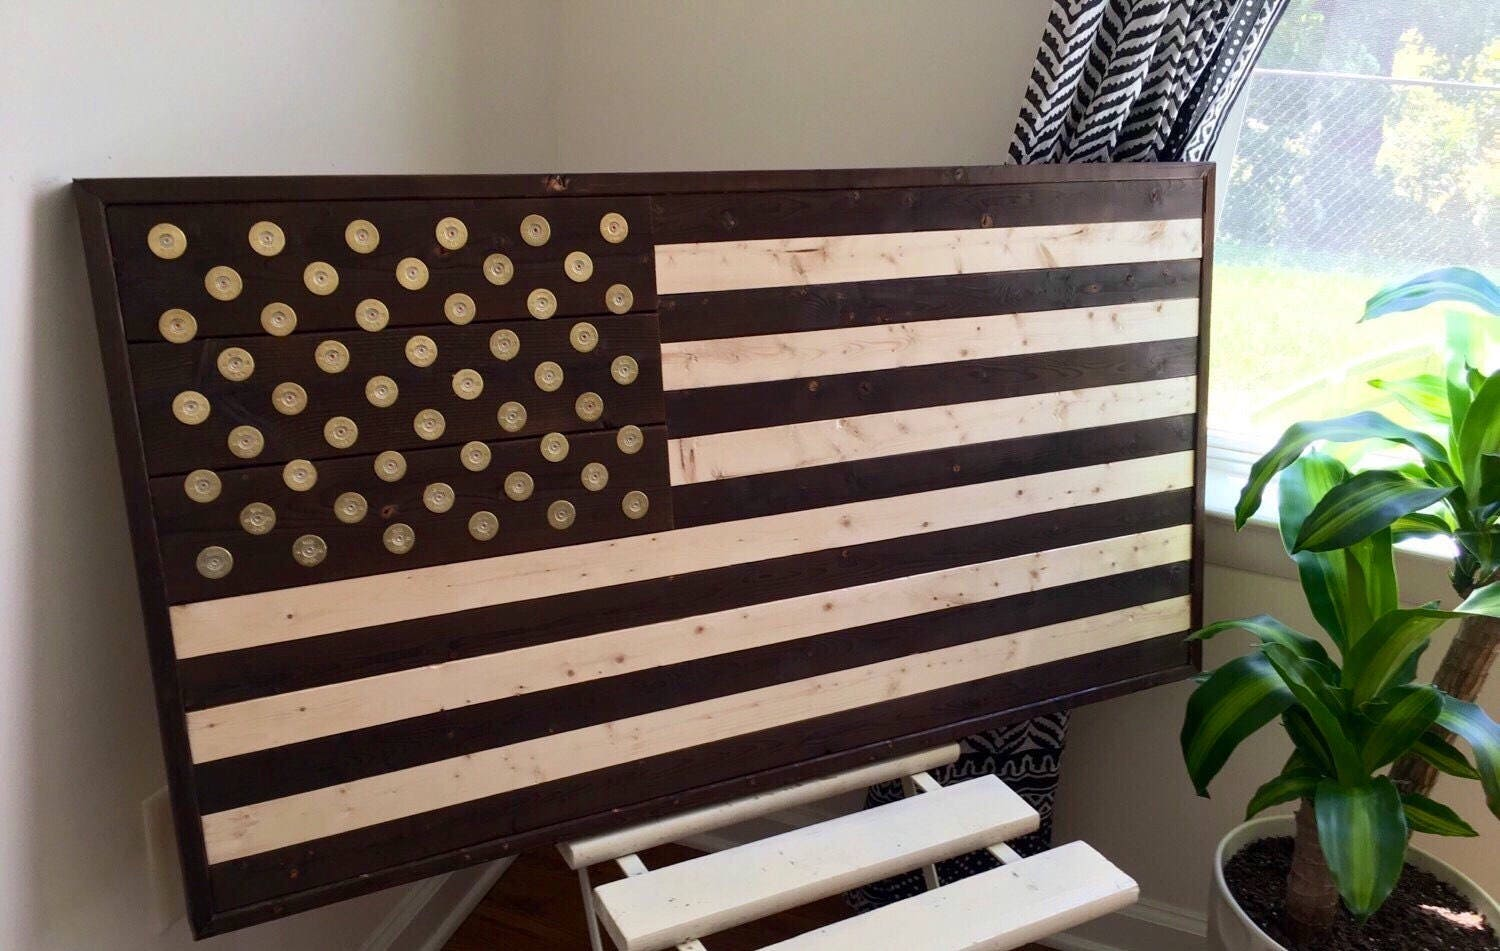 Burned Reclaimed Wood American Flag Wall Art With Winchester